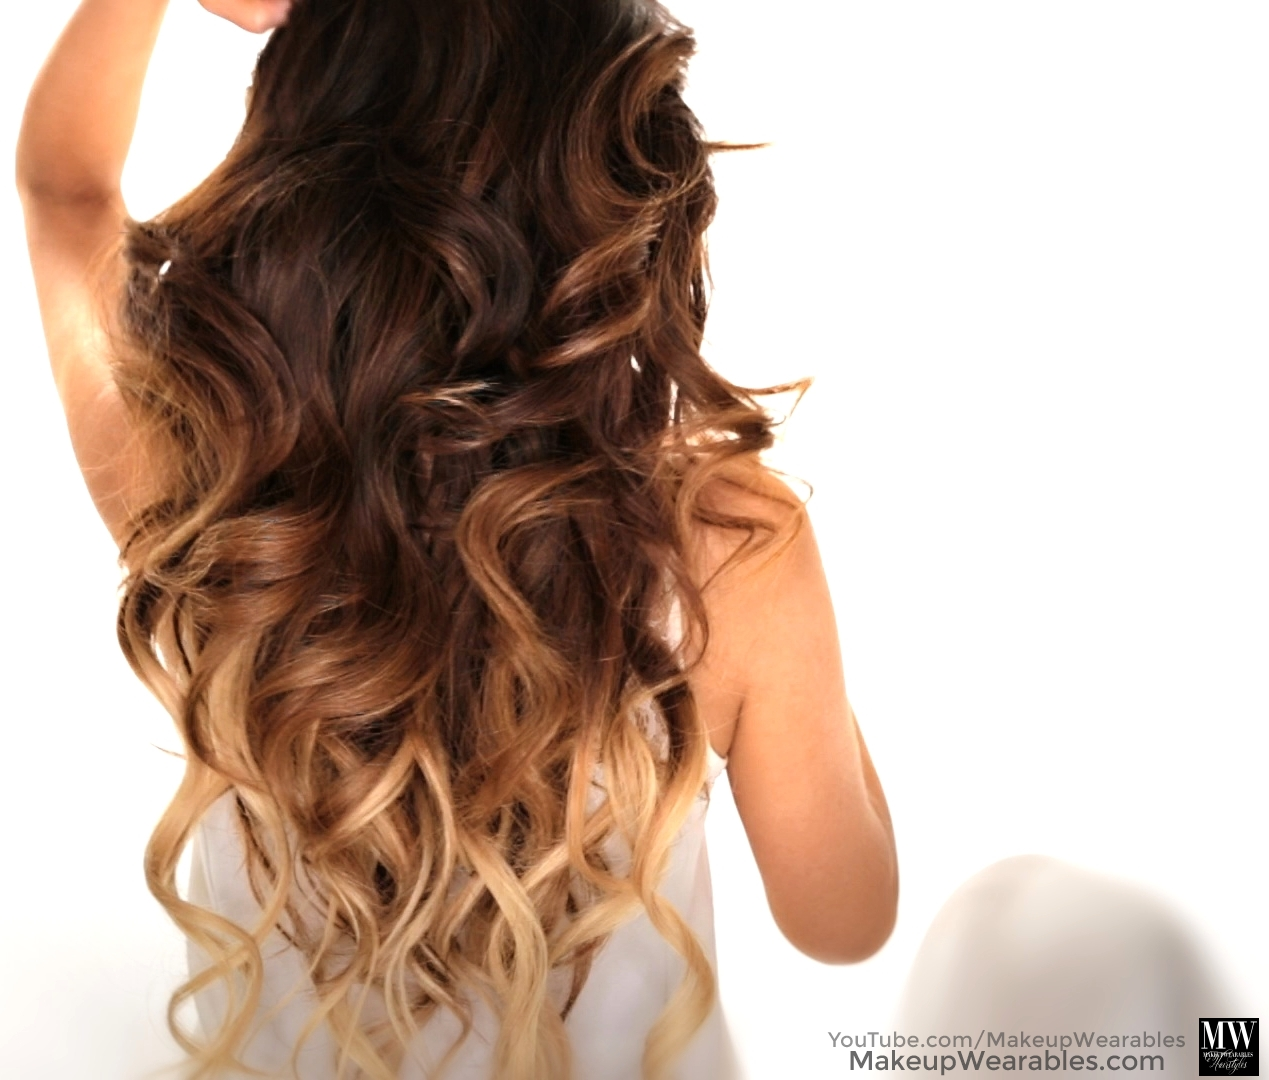 43 sunkissed beach curls hairstyles for women hairstylo